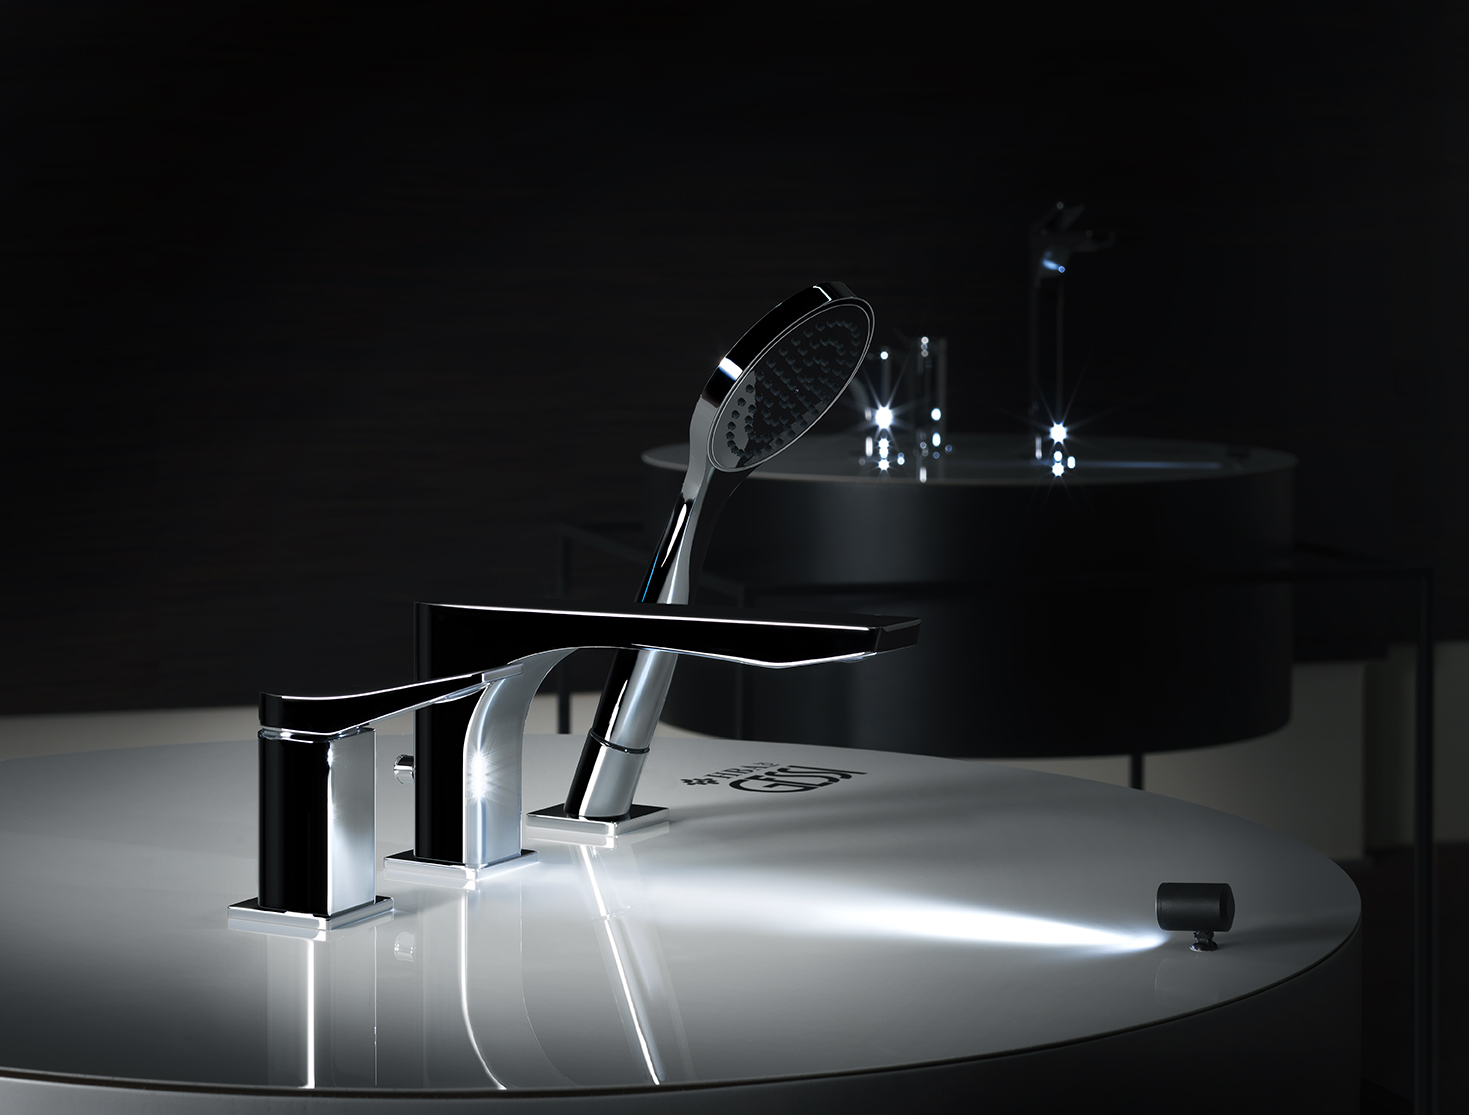 HBA Product's partnership with Gessi promotes wellness through design by considering both object and space as complementary.